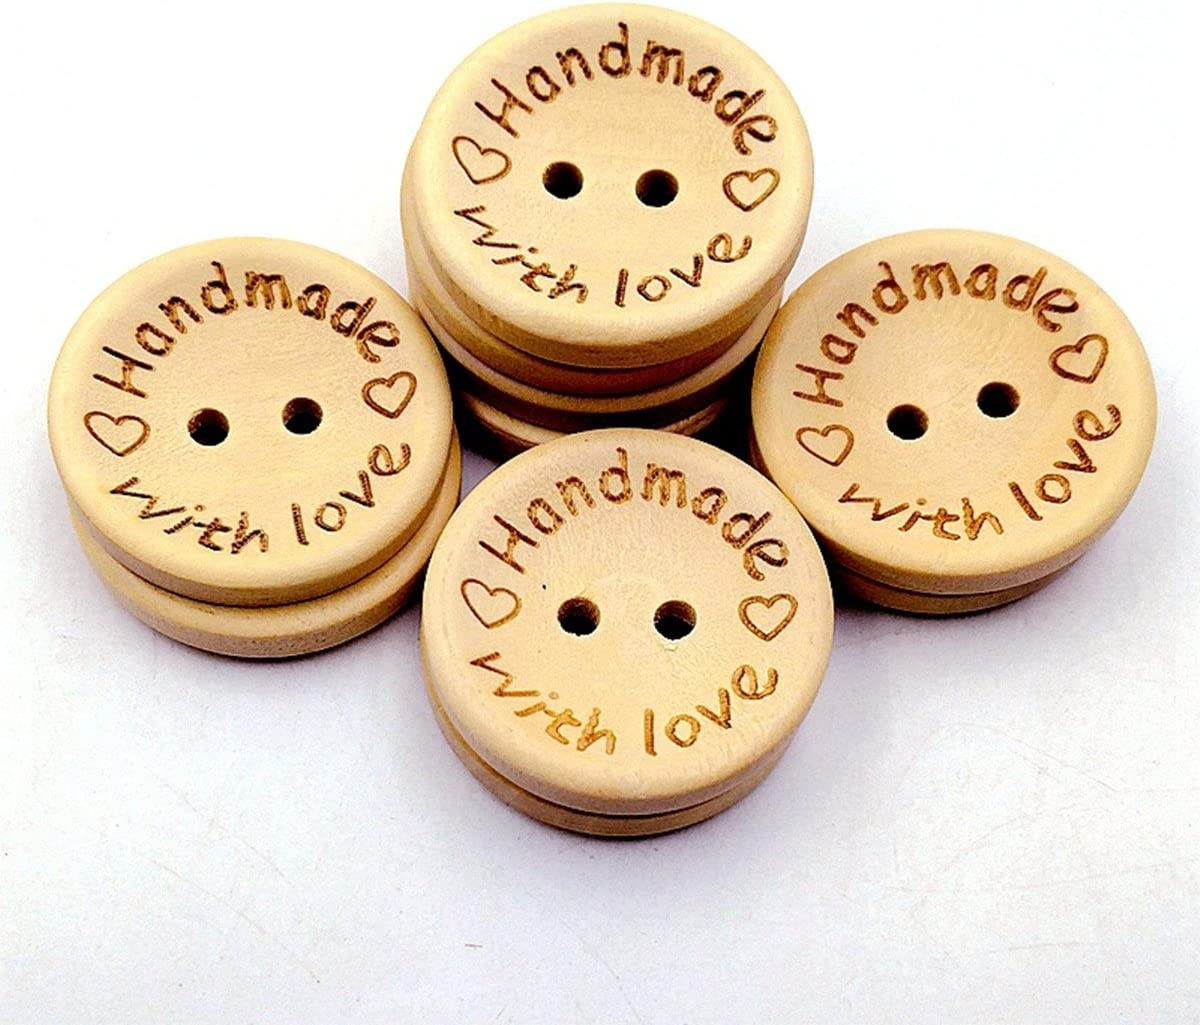 100 Pieces Handmade Love Heart Wood Buttons 2 Holes 15mm for DIY Sewing